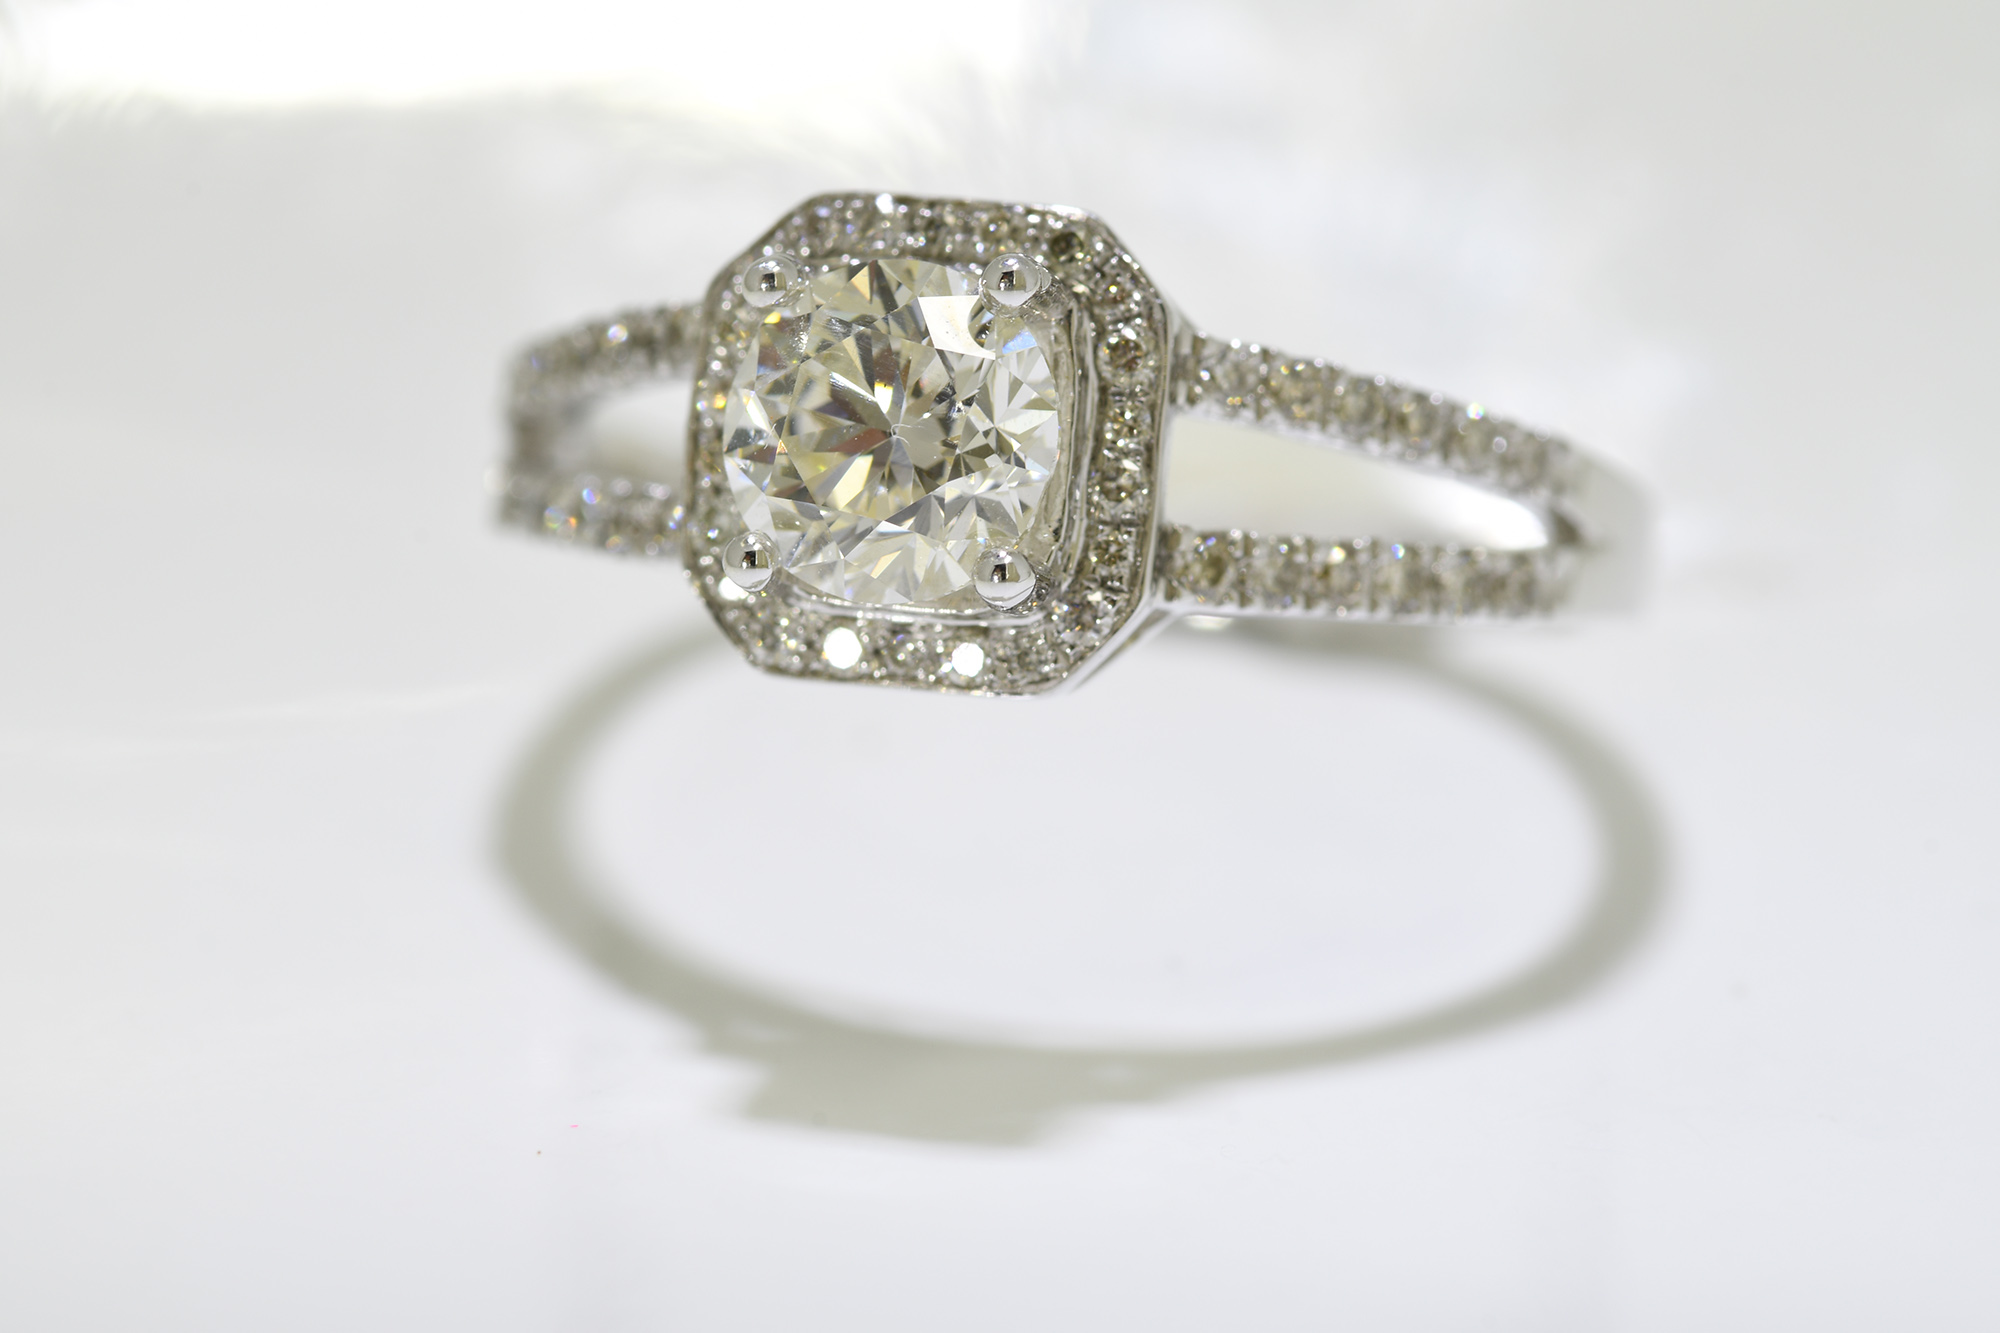 Solitaire Diamond Ring - Image 3 of 4